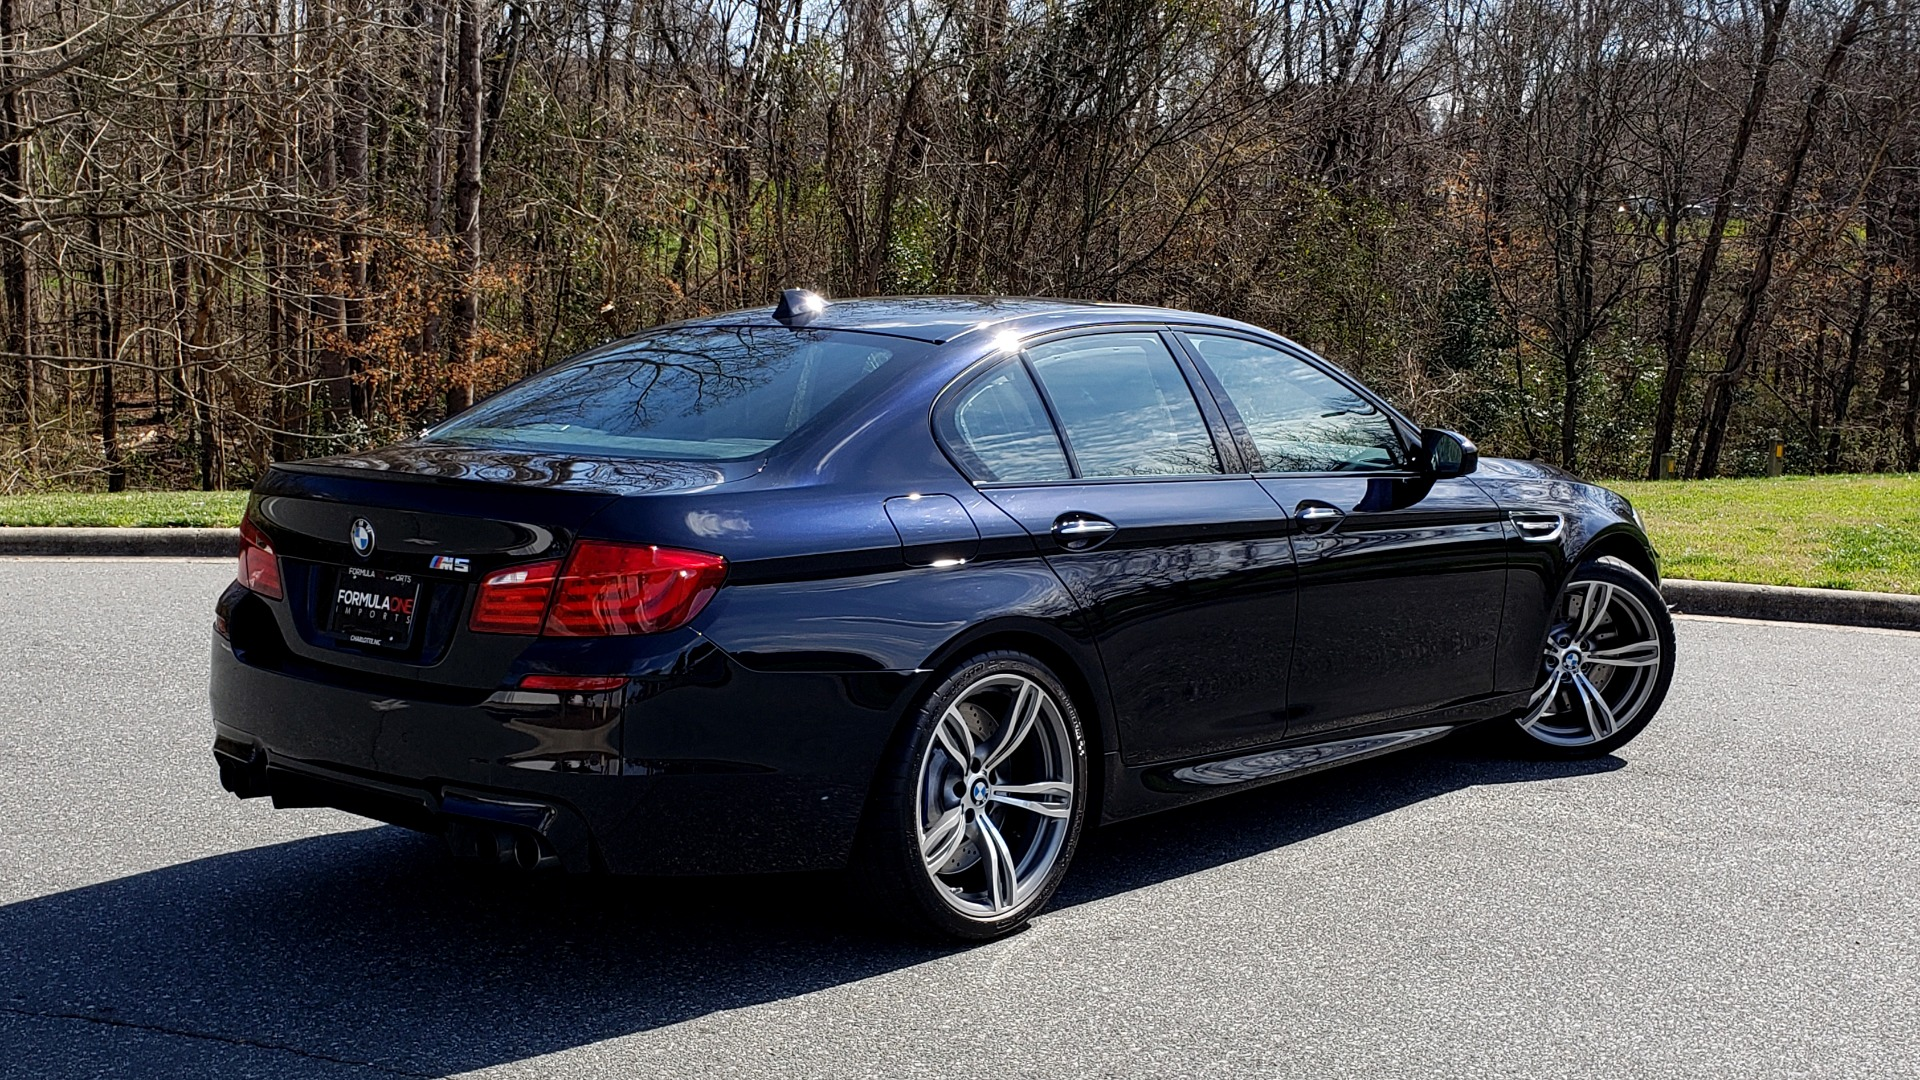 Used 2013 BMW M5 EXECUTIVE PKG / DRVR ASST / NAV / SUNROOF / REARVIEW for sale Sold at Formula Imports in Charlotte NC 28227 6